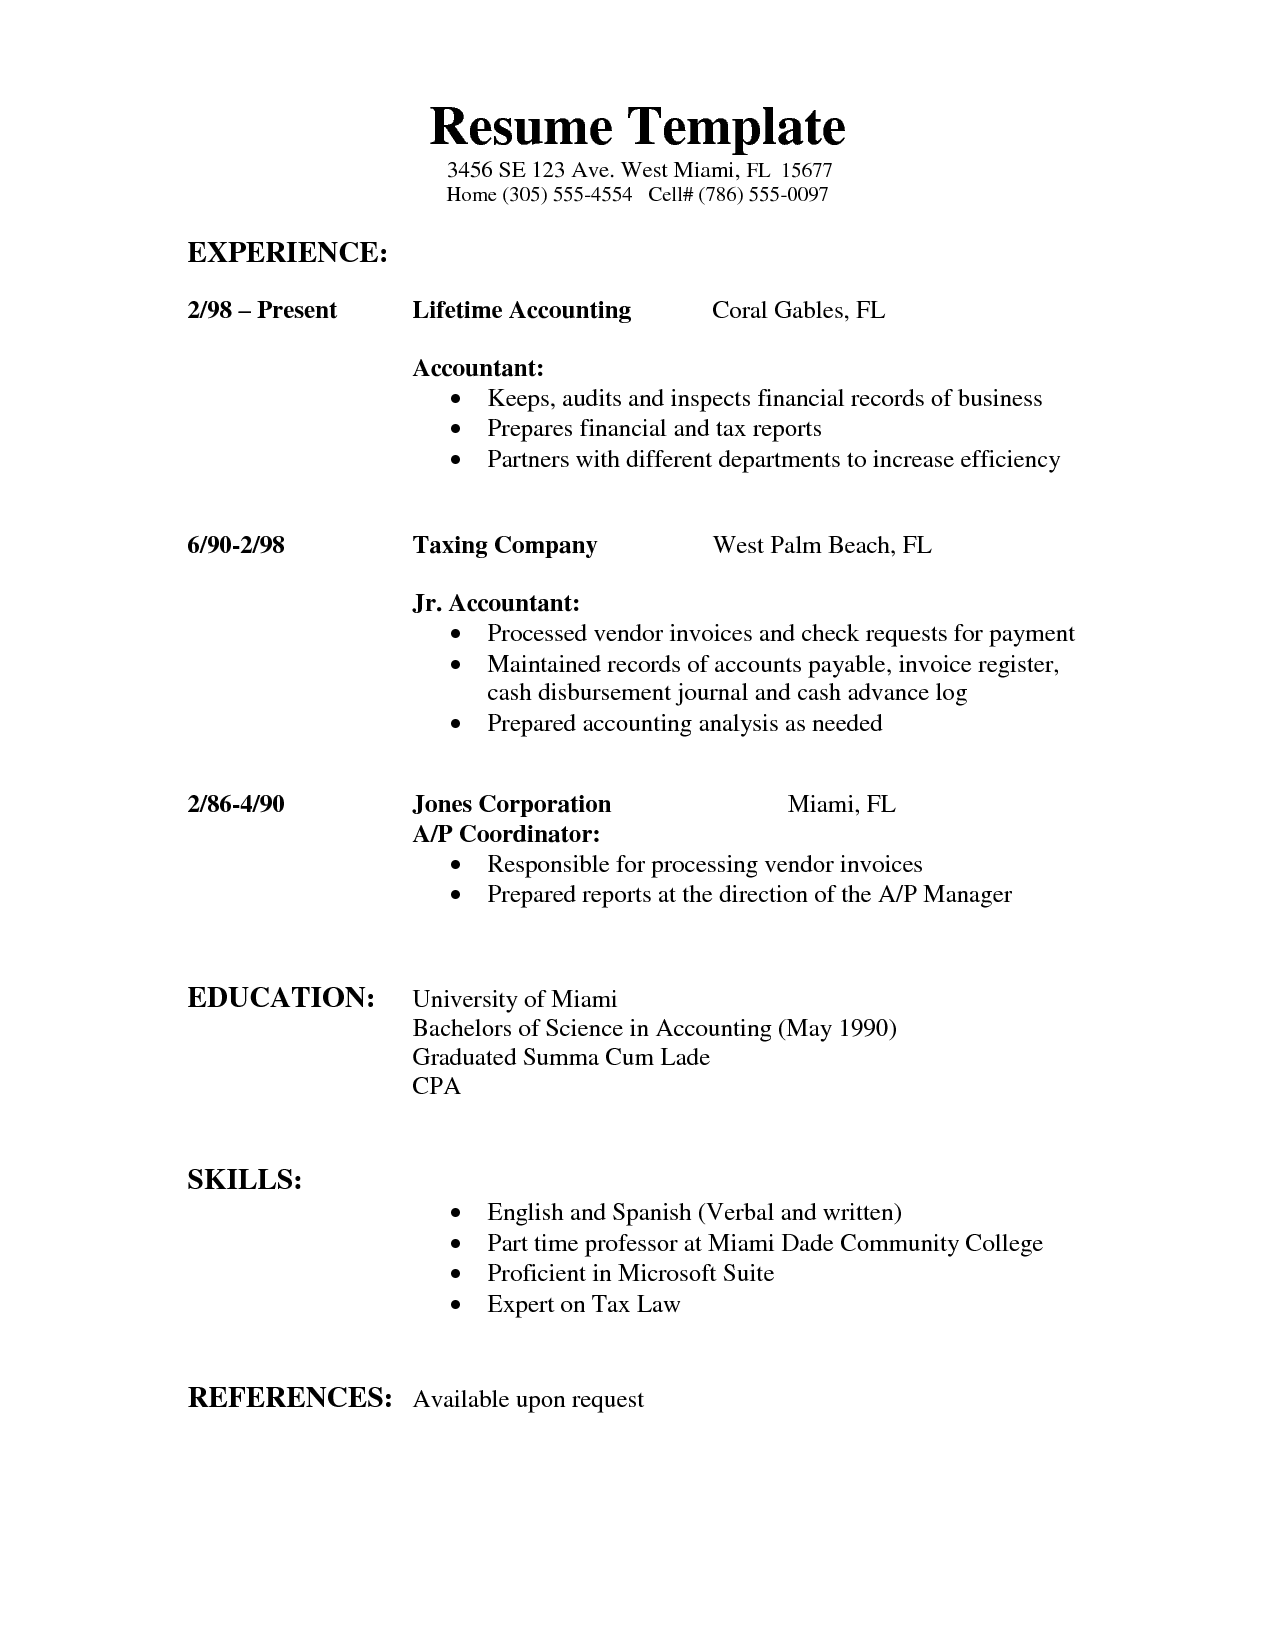 resumes | Resume Examples | Projects to Try | Pinterest | Resume ...